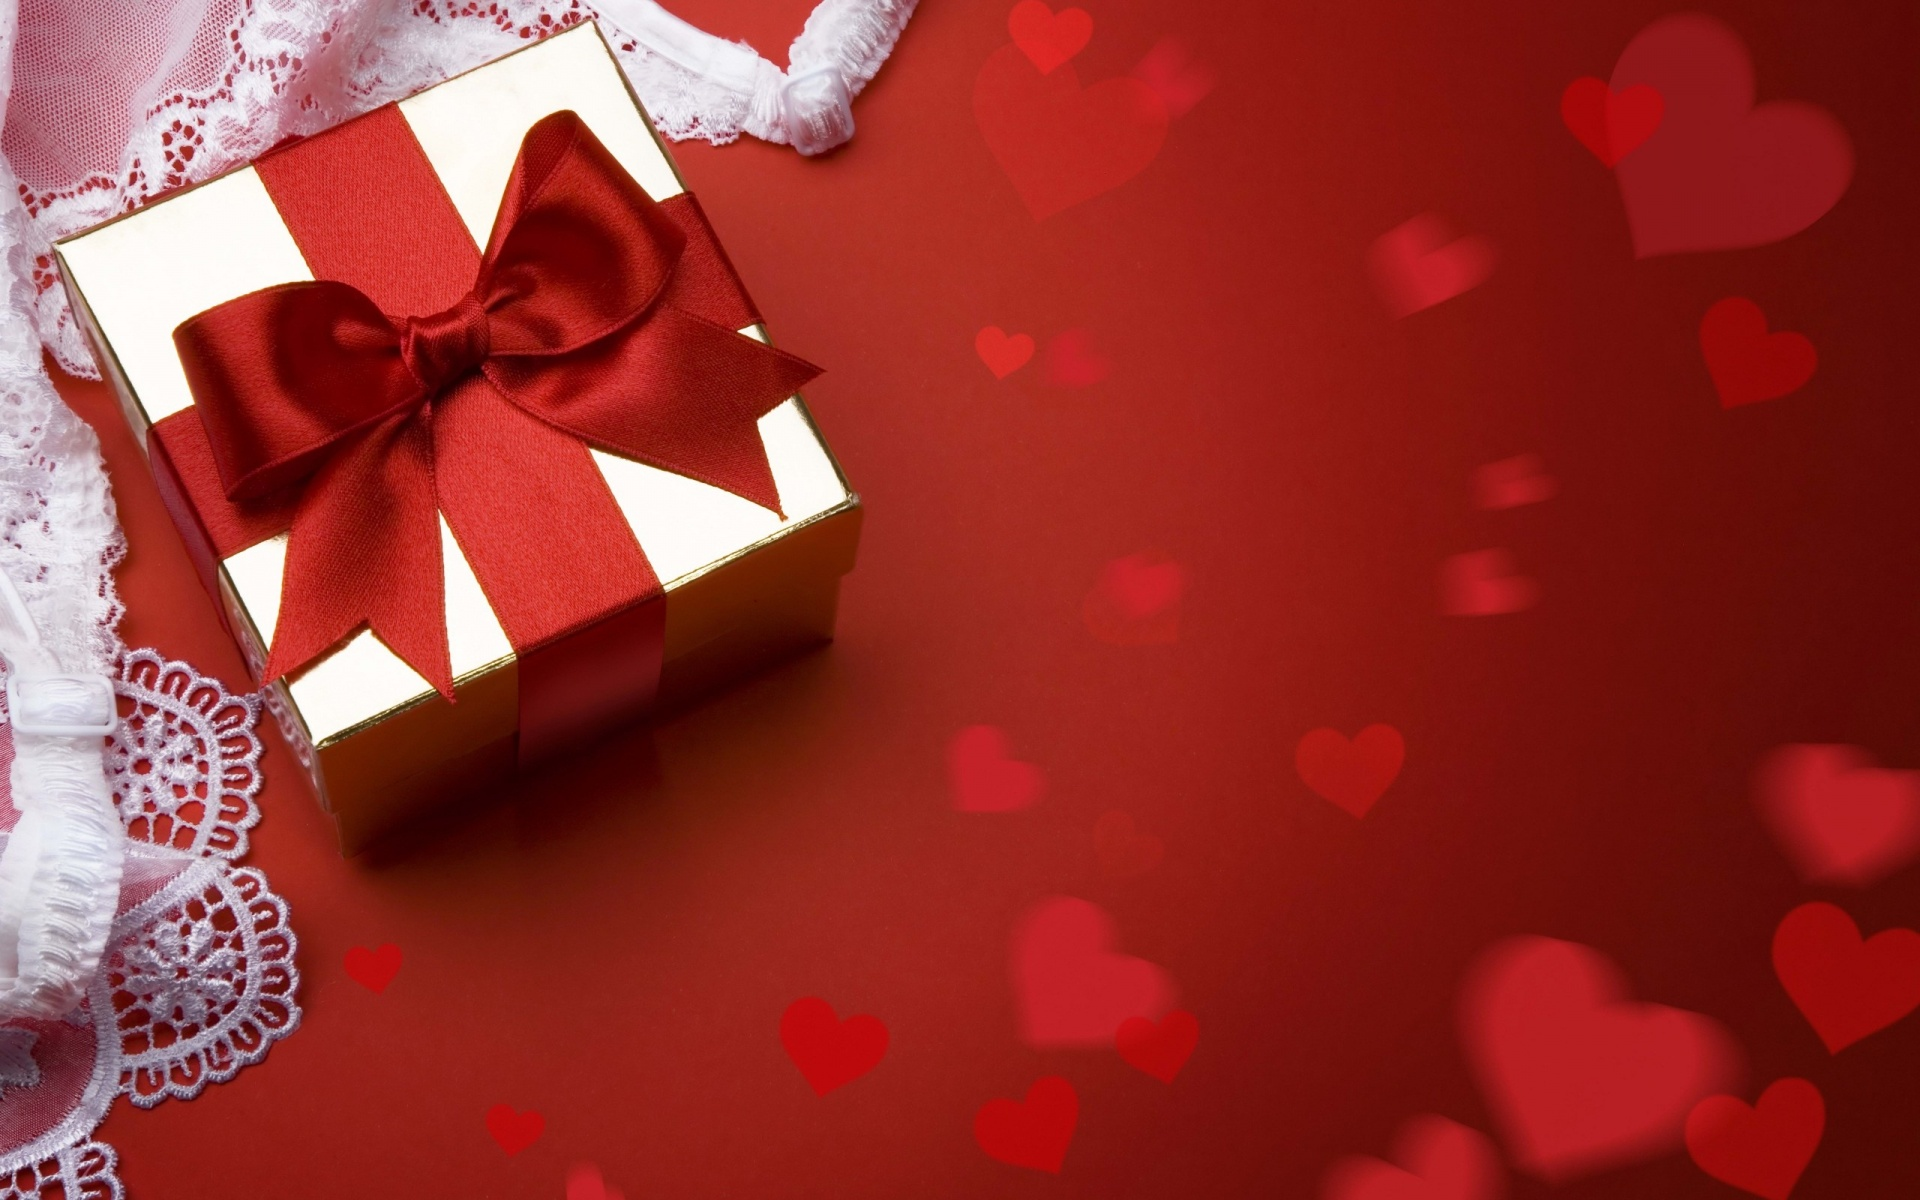 Gift Modern 4k Ultra Hd Wallpapers Valentine S Day Paparazzi Jewelry 3095274 Hd Wallpaper Backgrounds Download